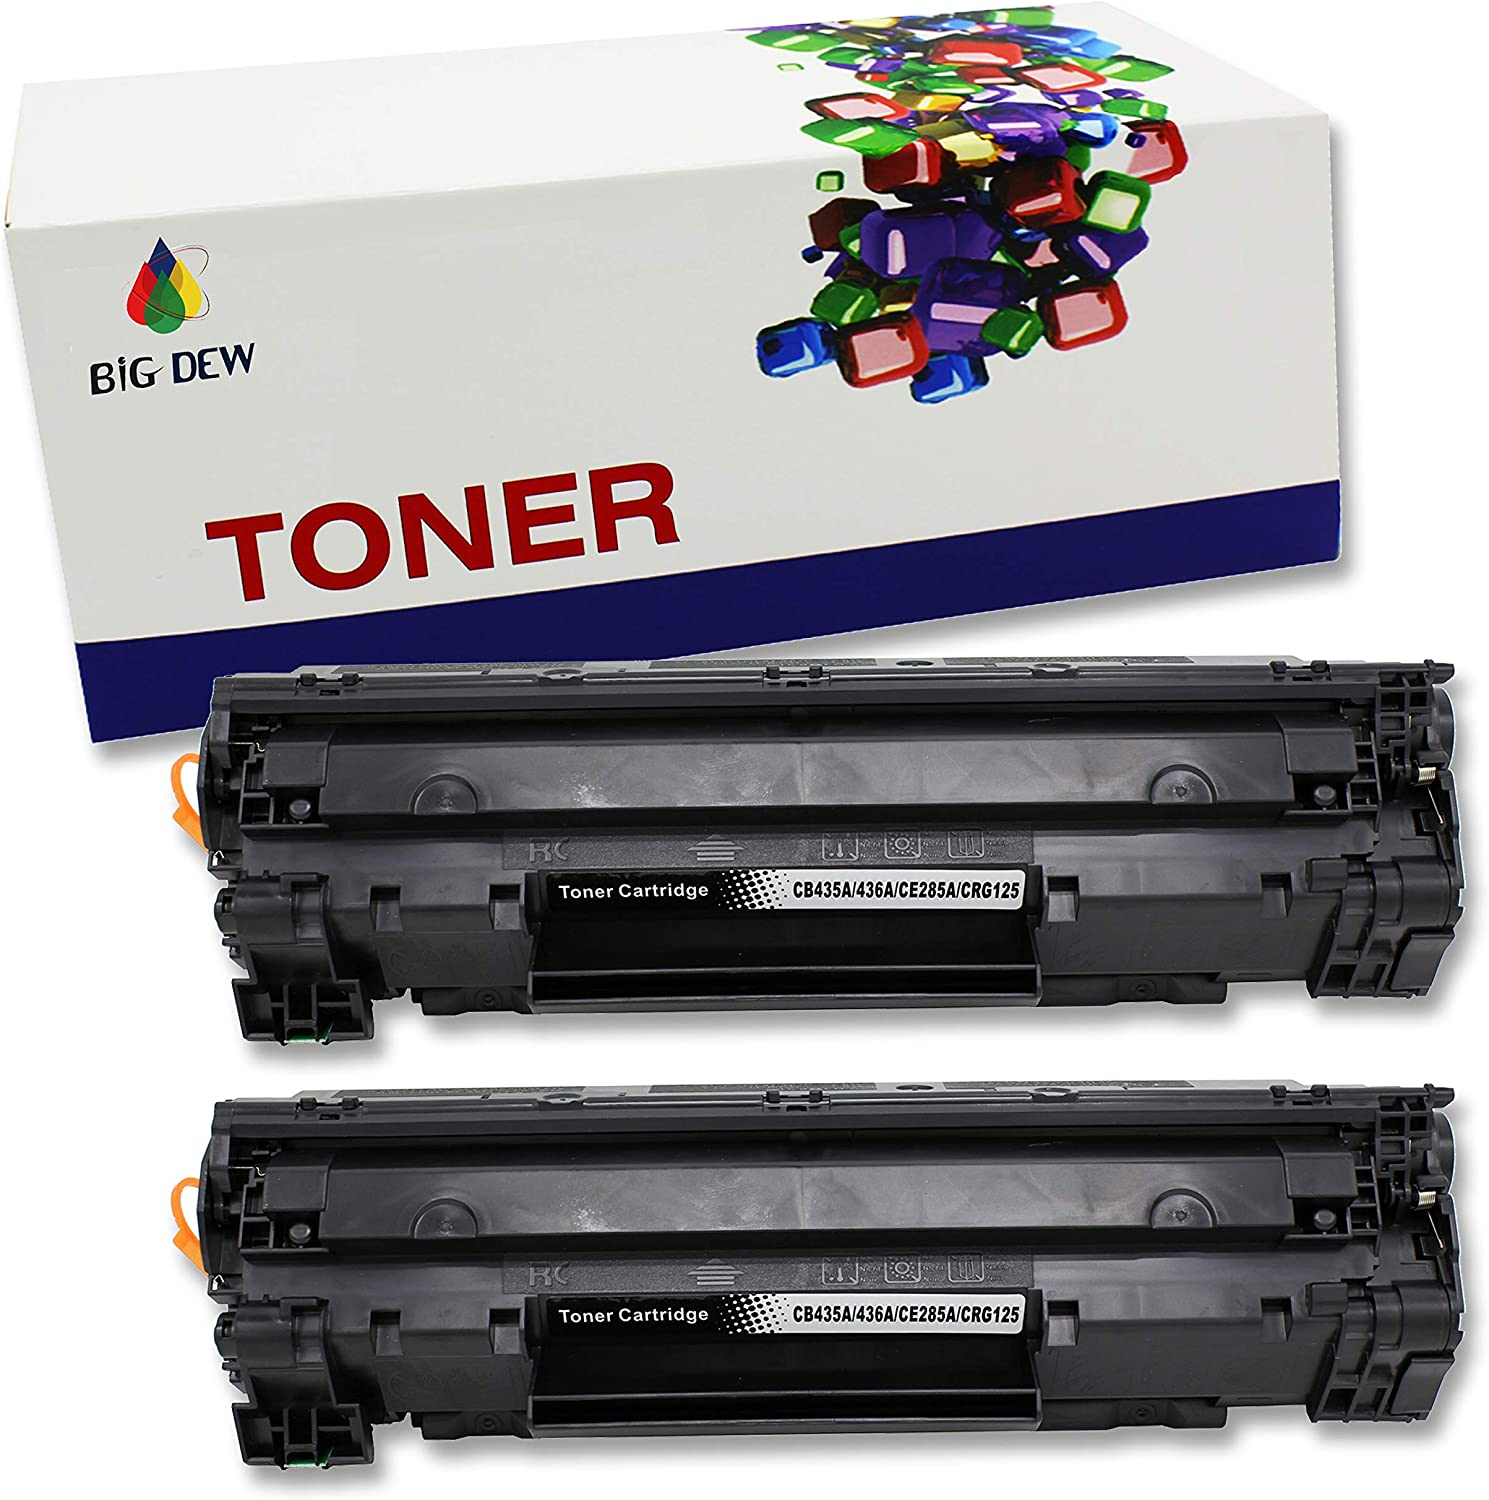 Big Dew Compatible Toner Cartridge Replacement For HP CE285A 85A Toner Cartridge use with LaserJet Pro P1102W P1102 P1100 M1212NFW M1212NF M1210 M1132 M1130 (Black, 2-Pack)